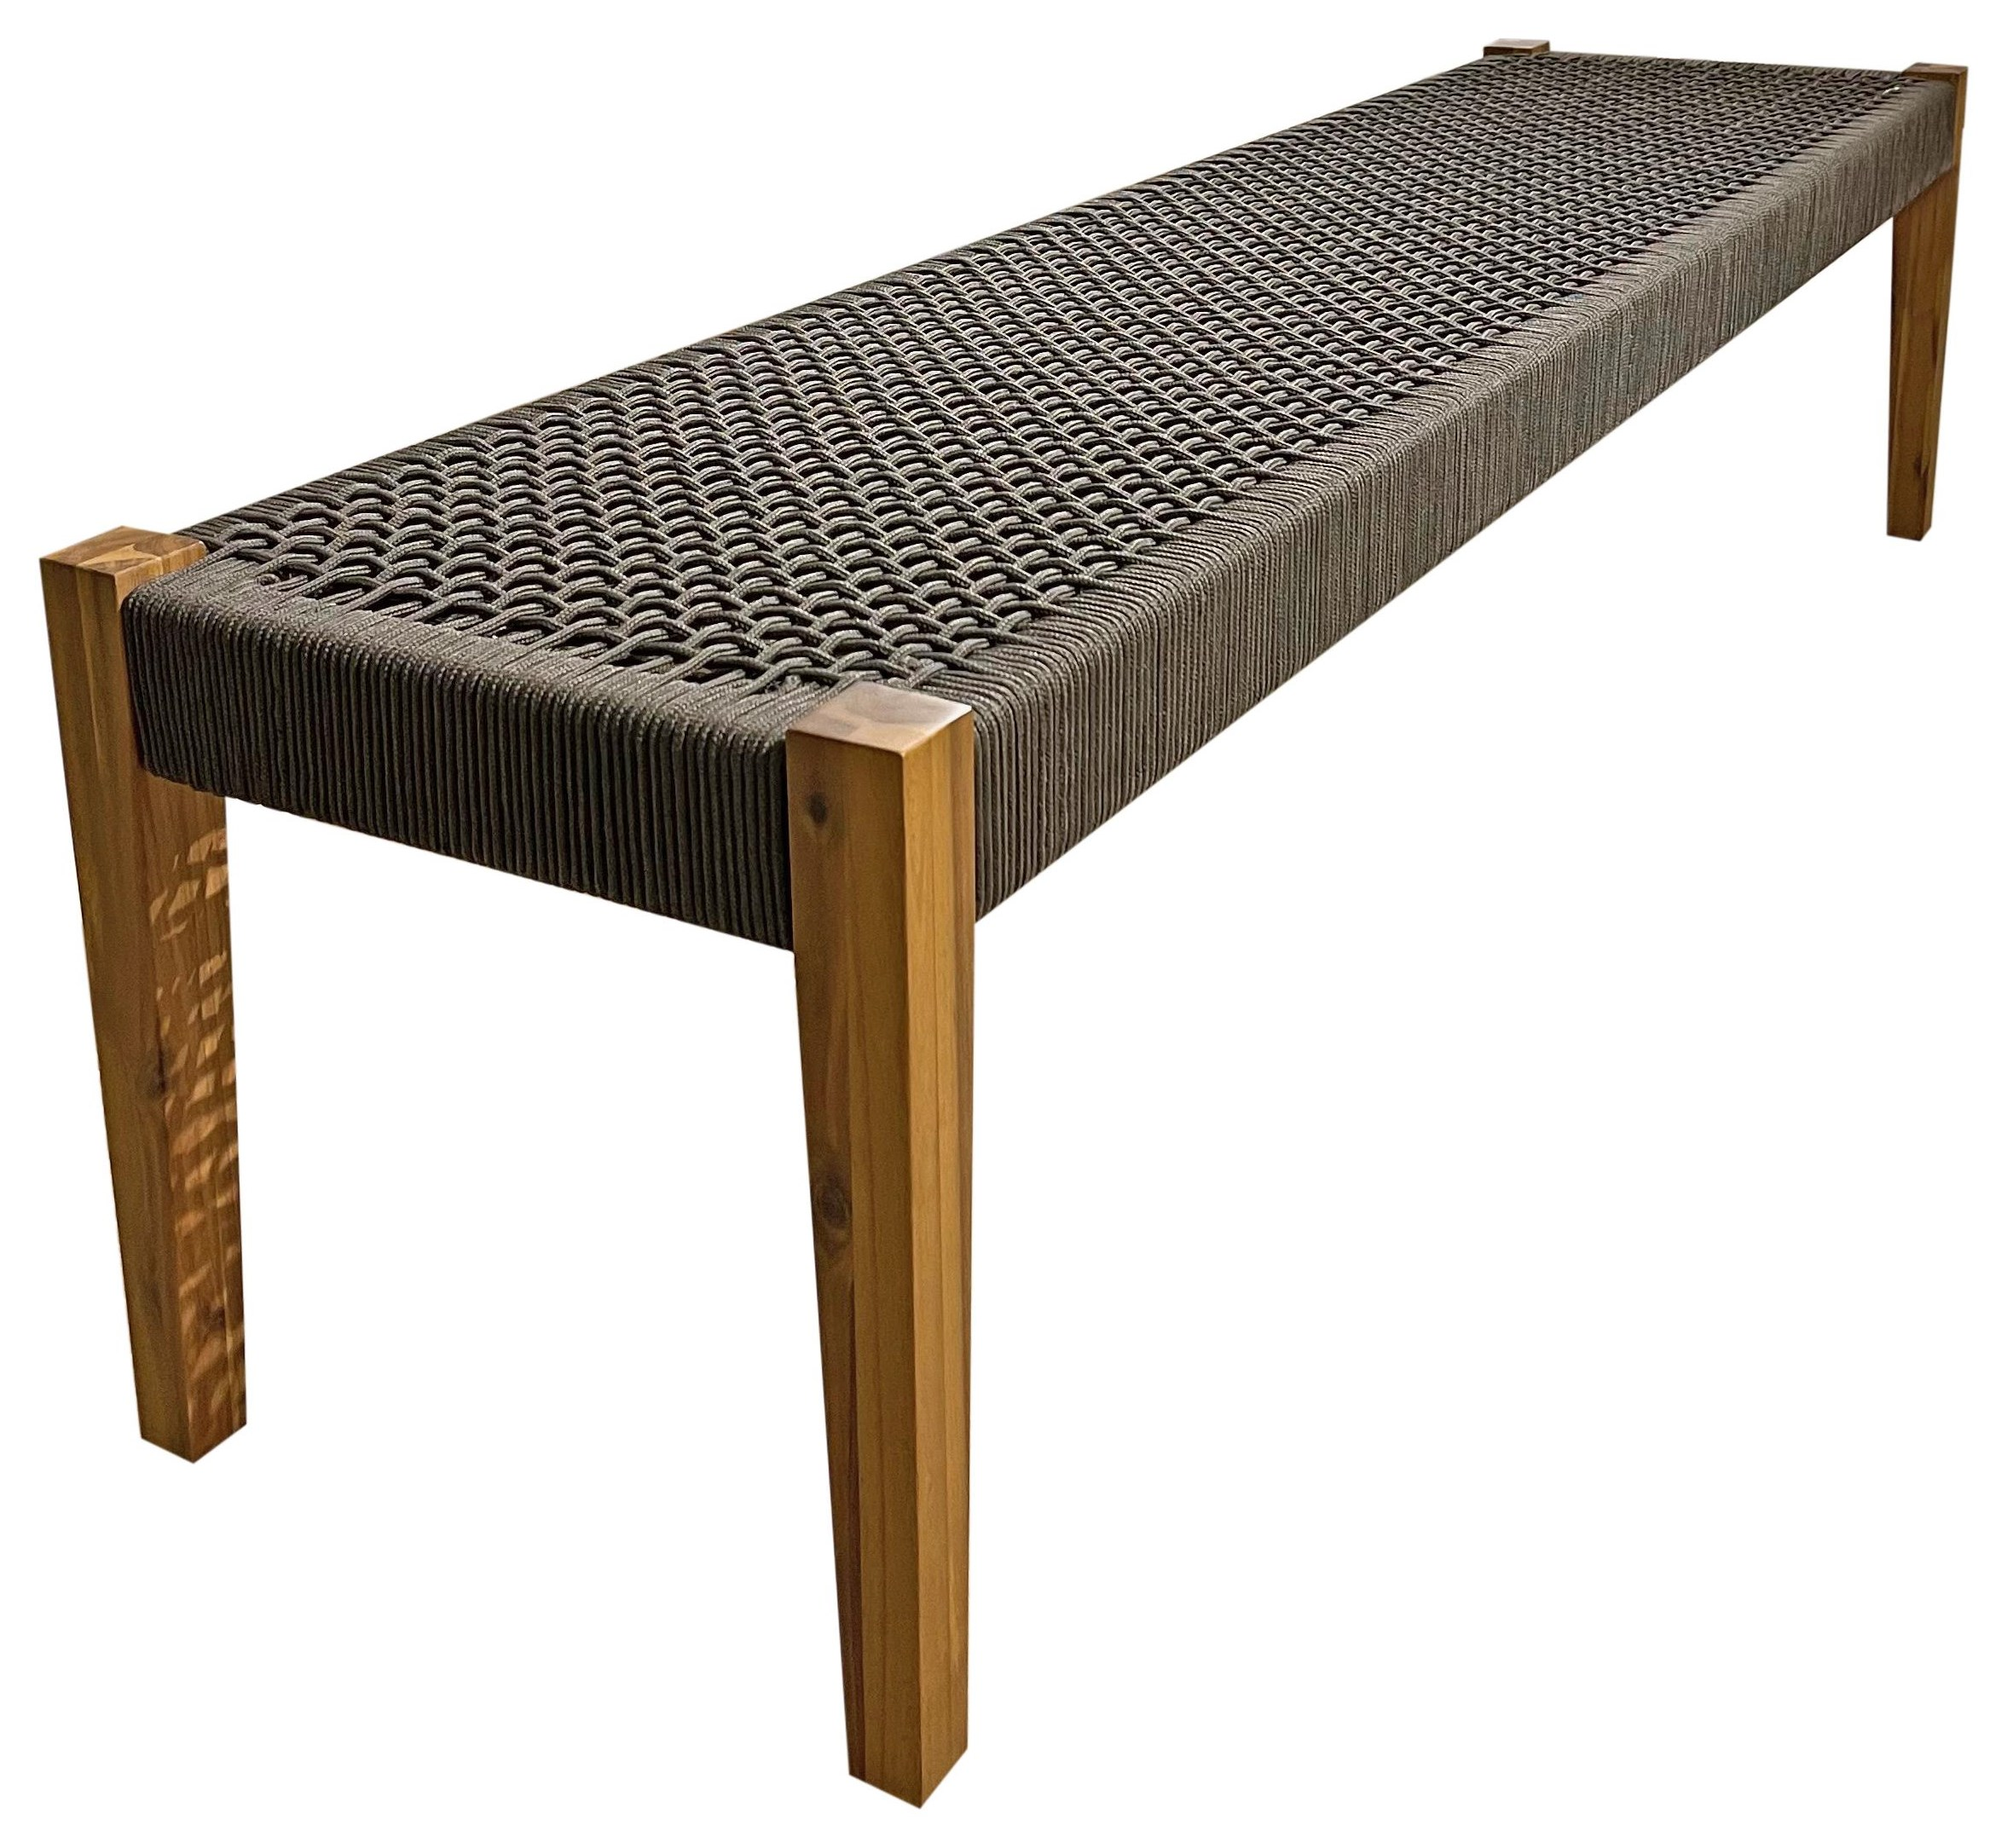 Sienna Bench by Design Evolution at Red Knot